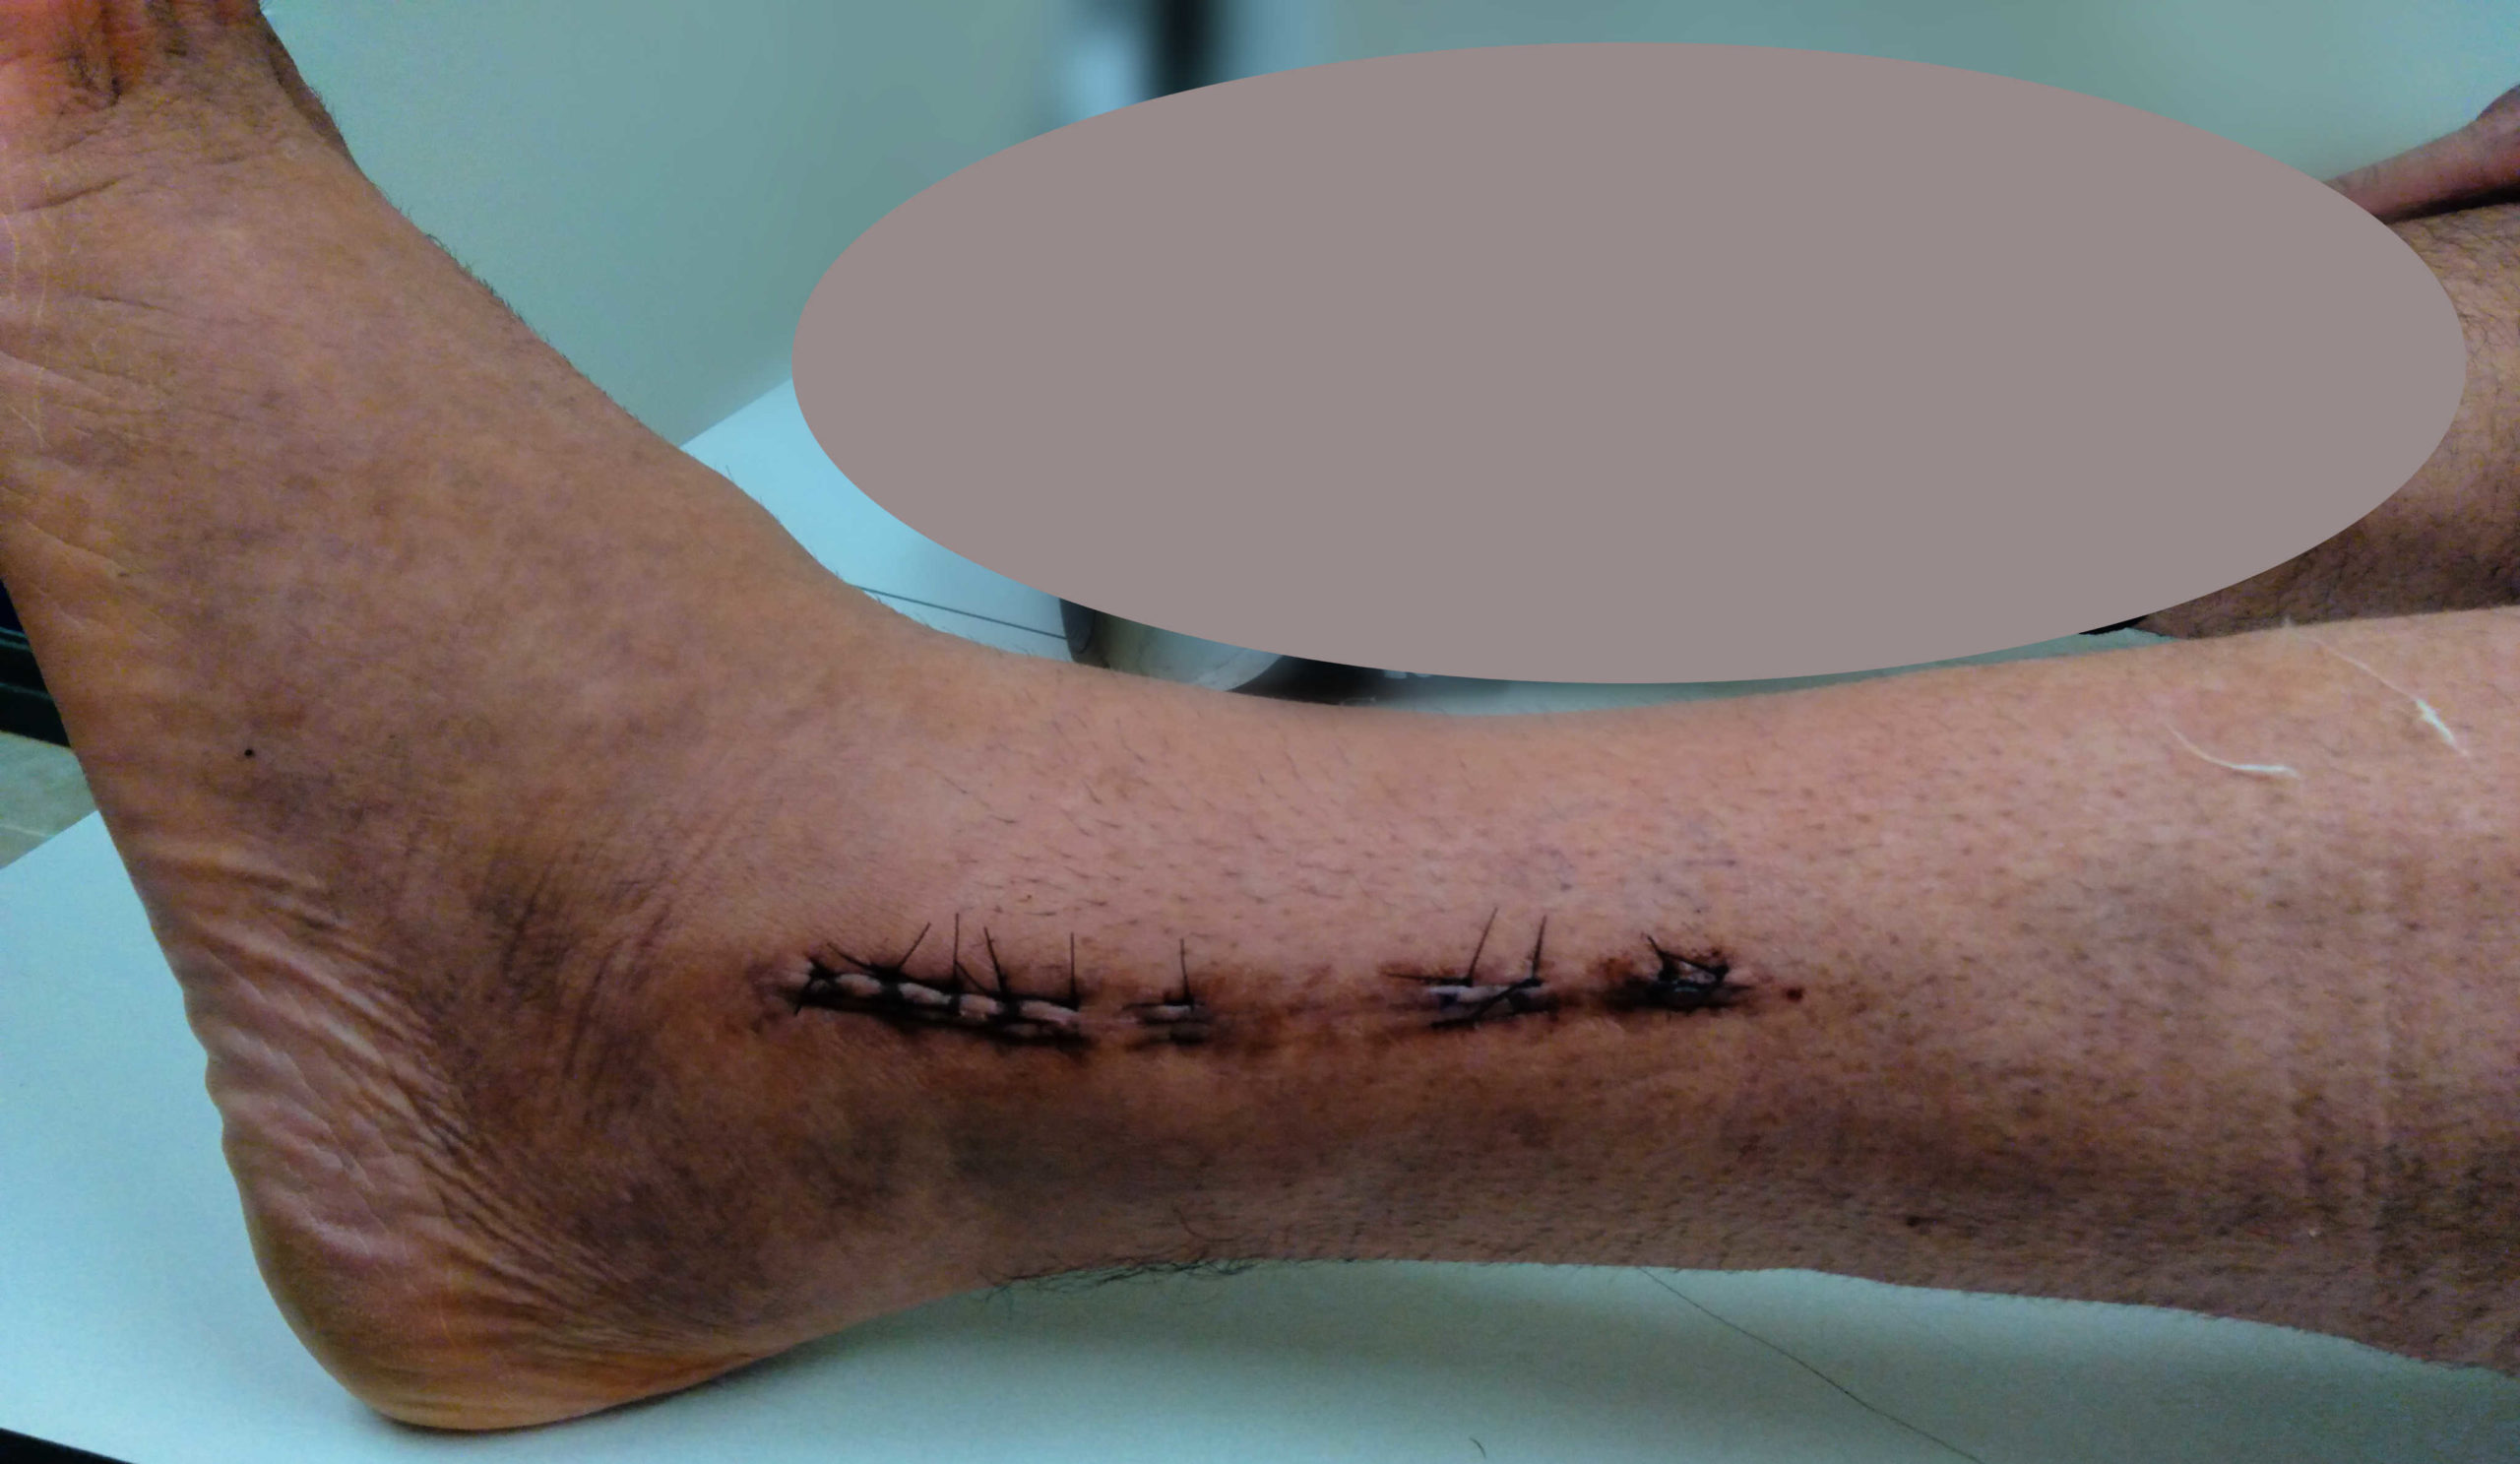 stitches and incision to leg after surgery to tibia and fibula